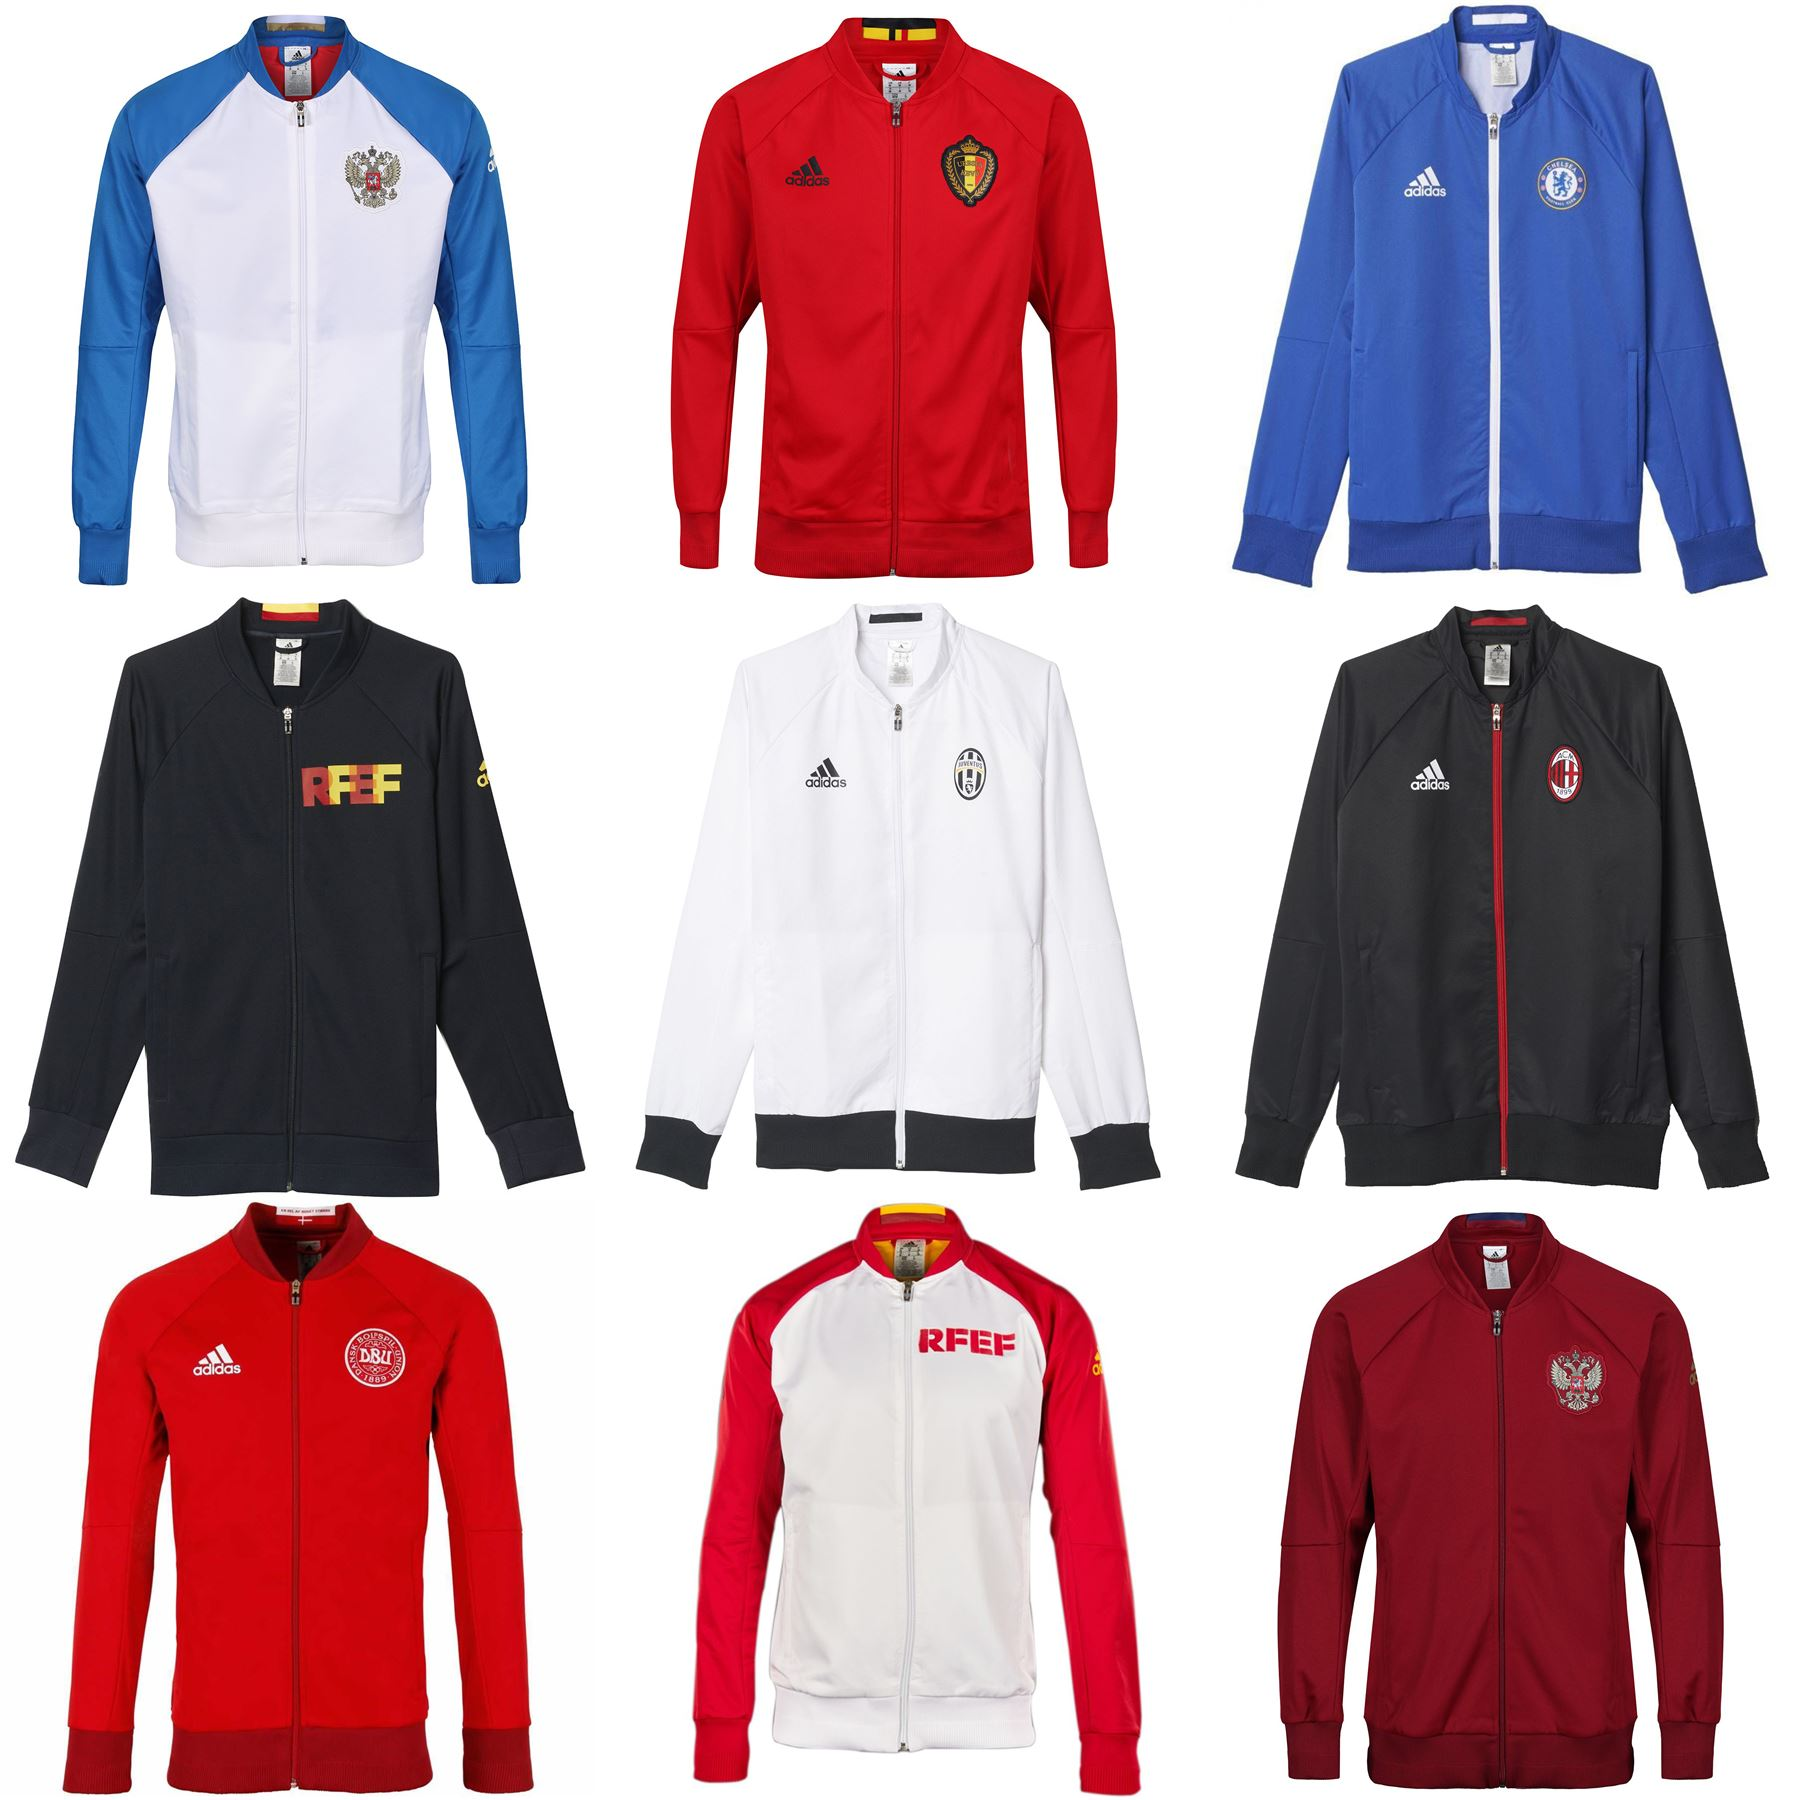 Adidas himno chaqueta TRACK TOP CHELSEA MAN UTD Bélgica Rusia REAL MADRID  JUVE 1fc6aa5c52fe3